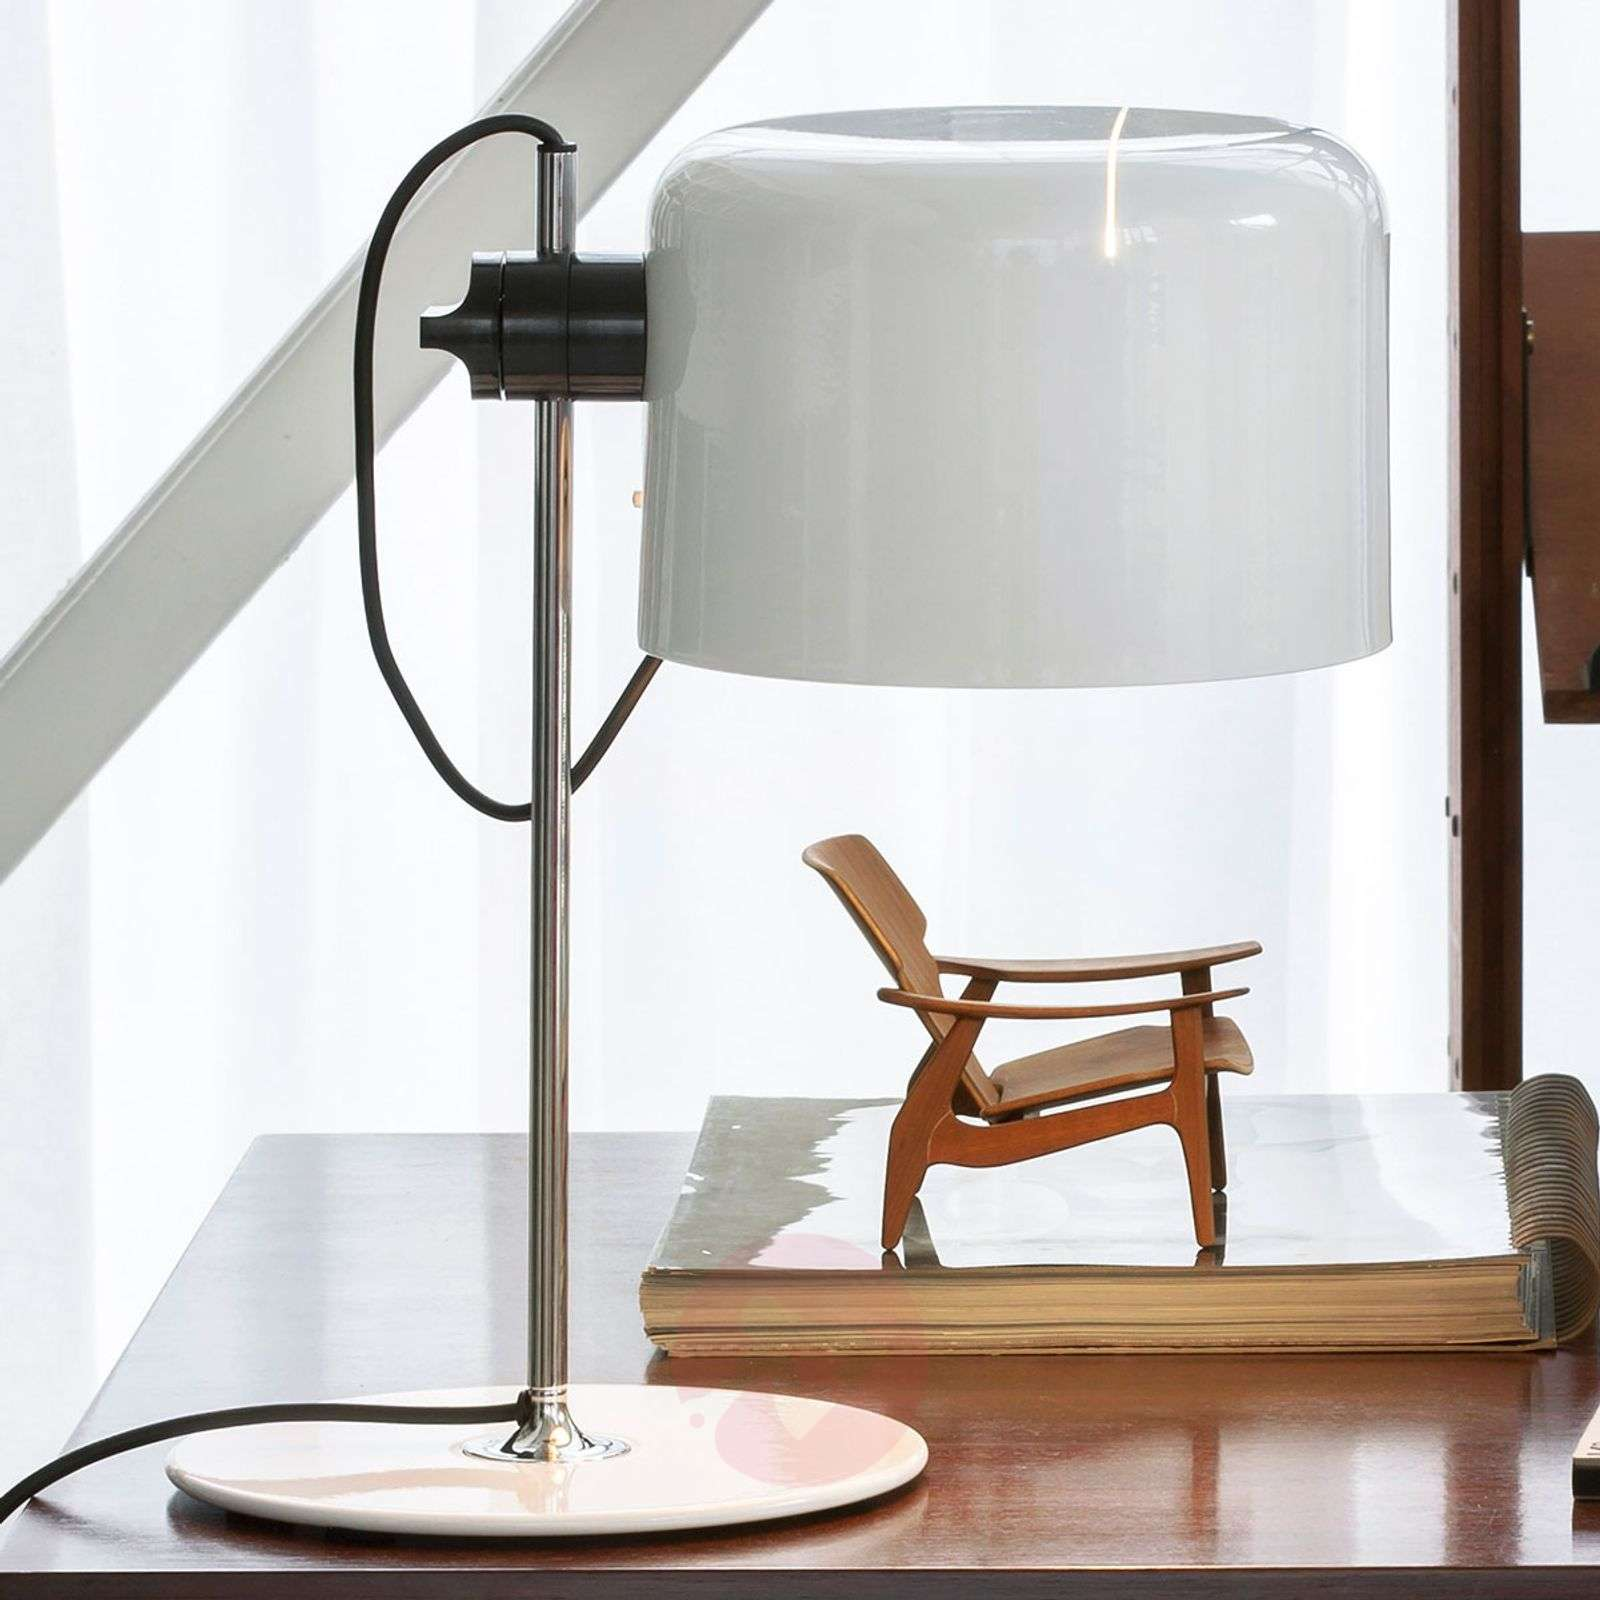 Coupé timeless designer table lamp-7265050X-01